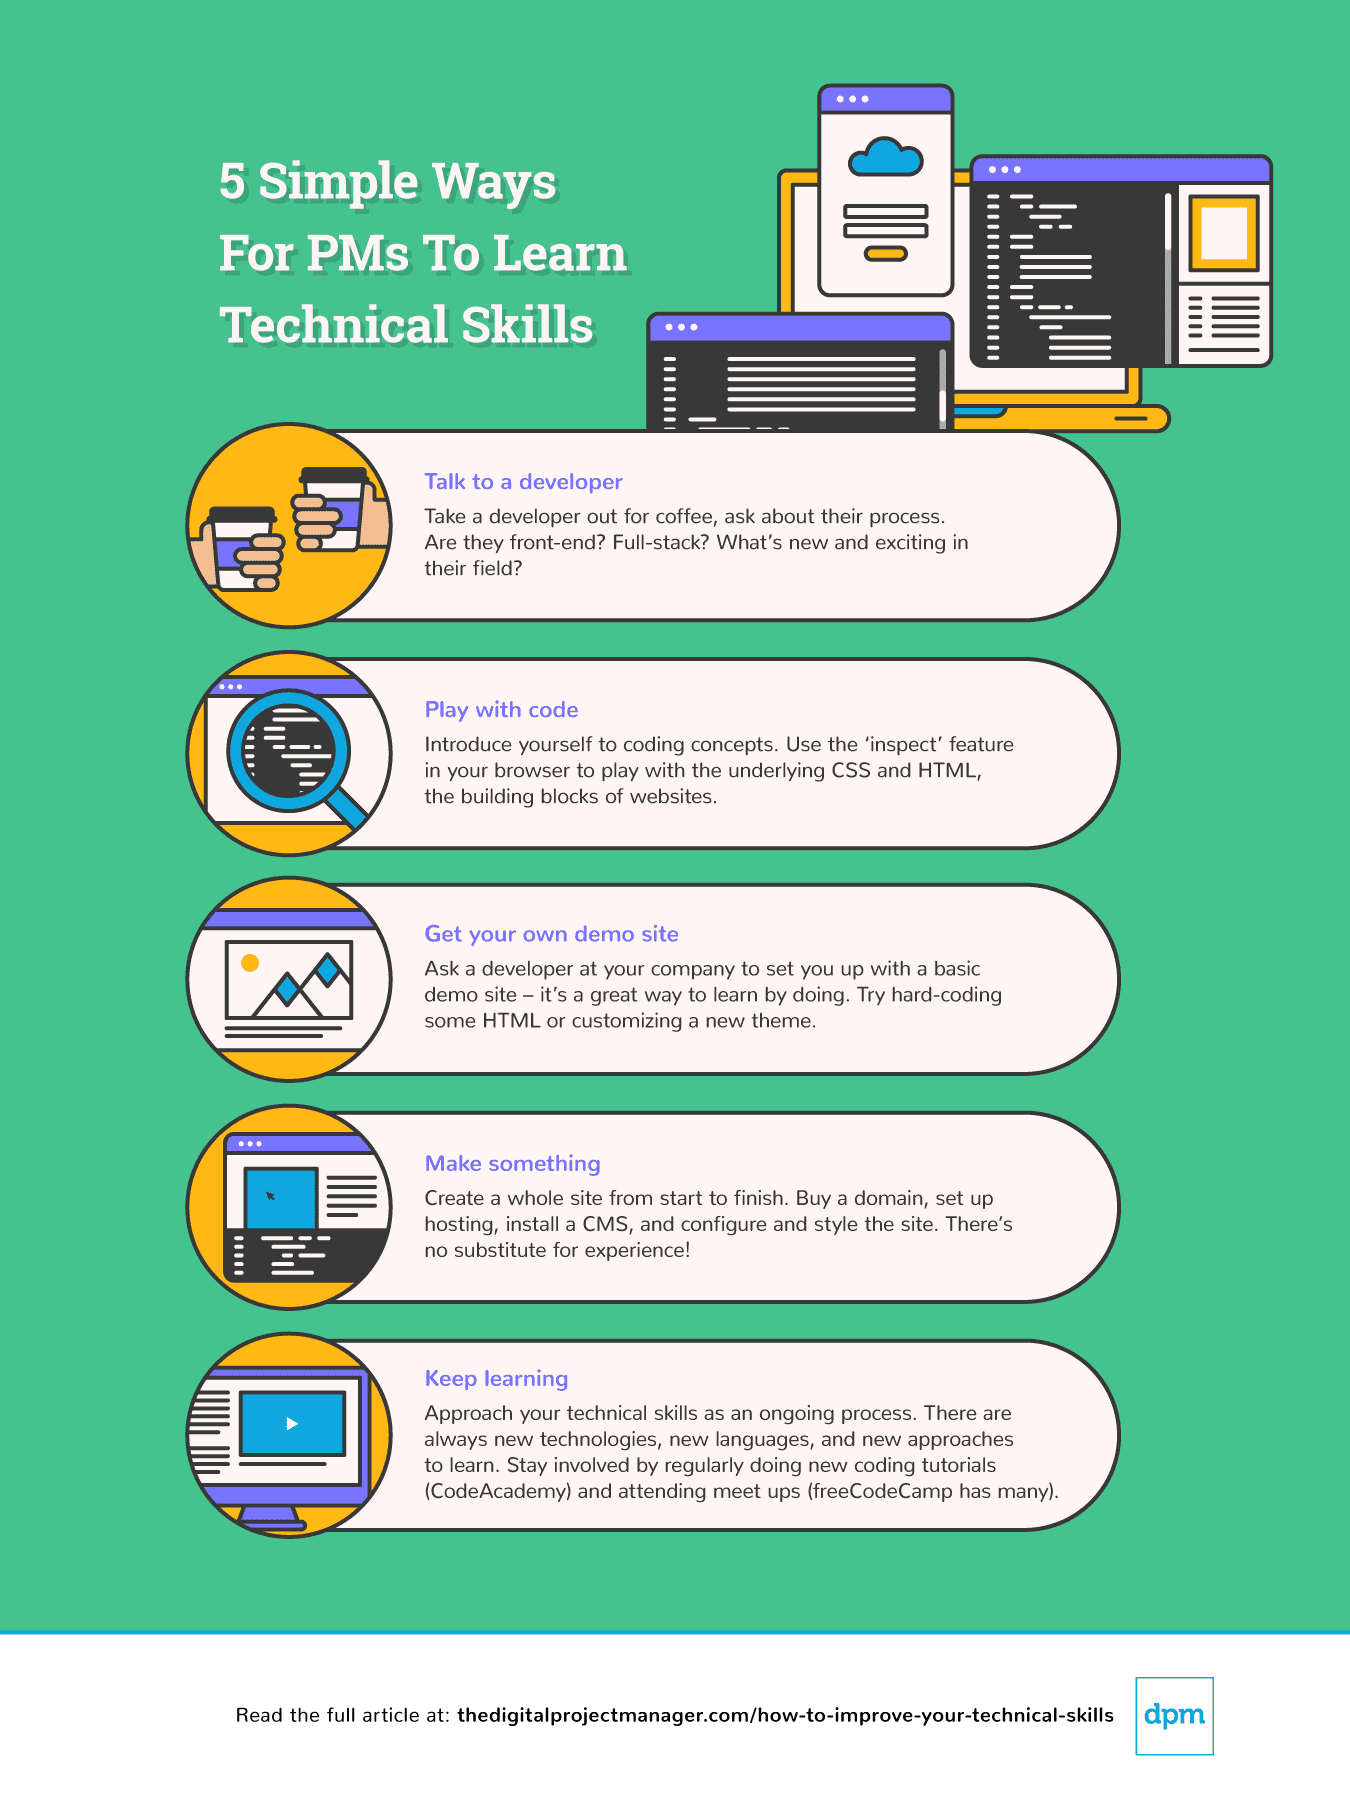 technical-skills-as-a-pm-5-ways